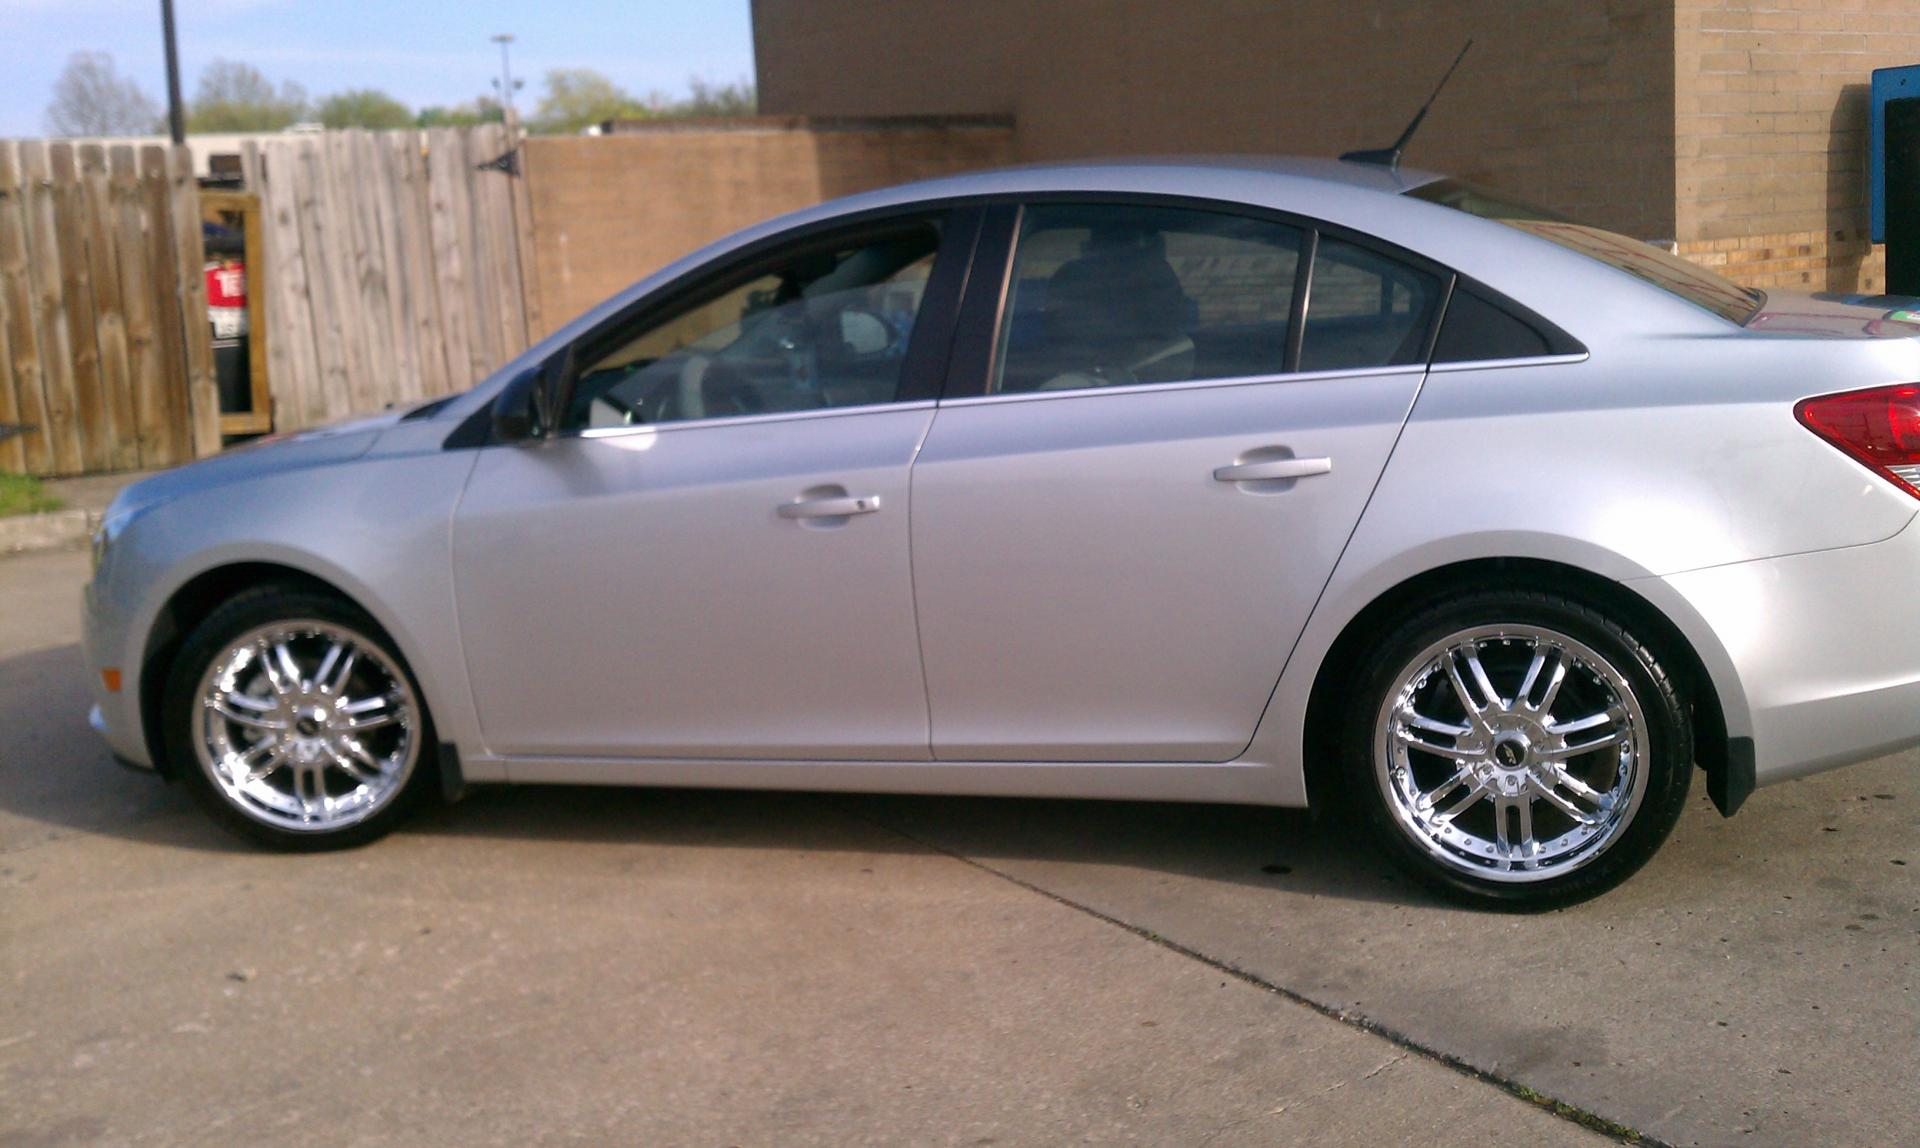 2012 Chevy Cruze Tire Size >> nice wheels on the chevy cruze